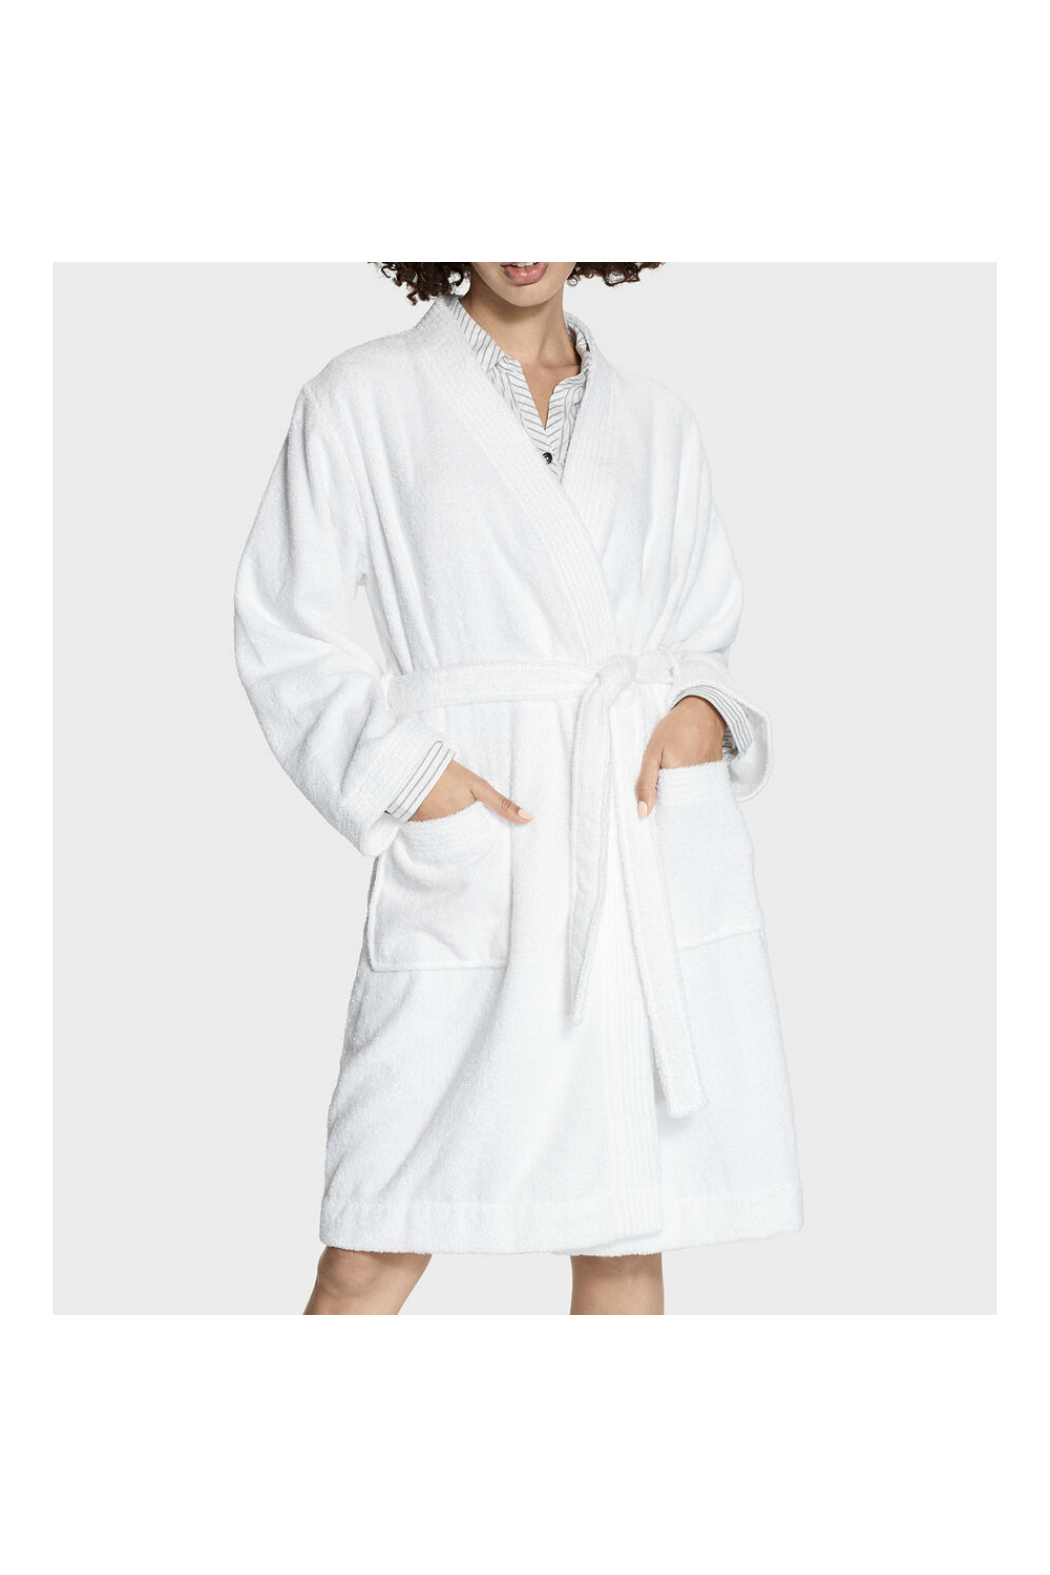 Ugg LORIE TERRY ROBE - Main Image